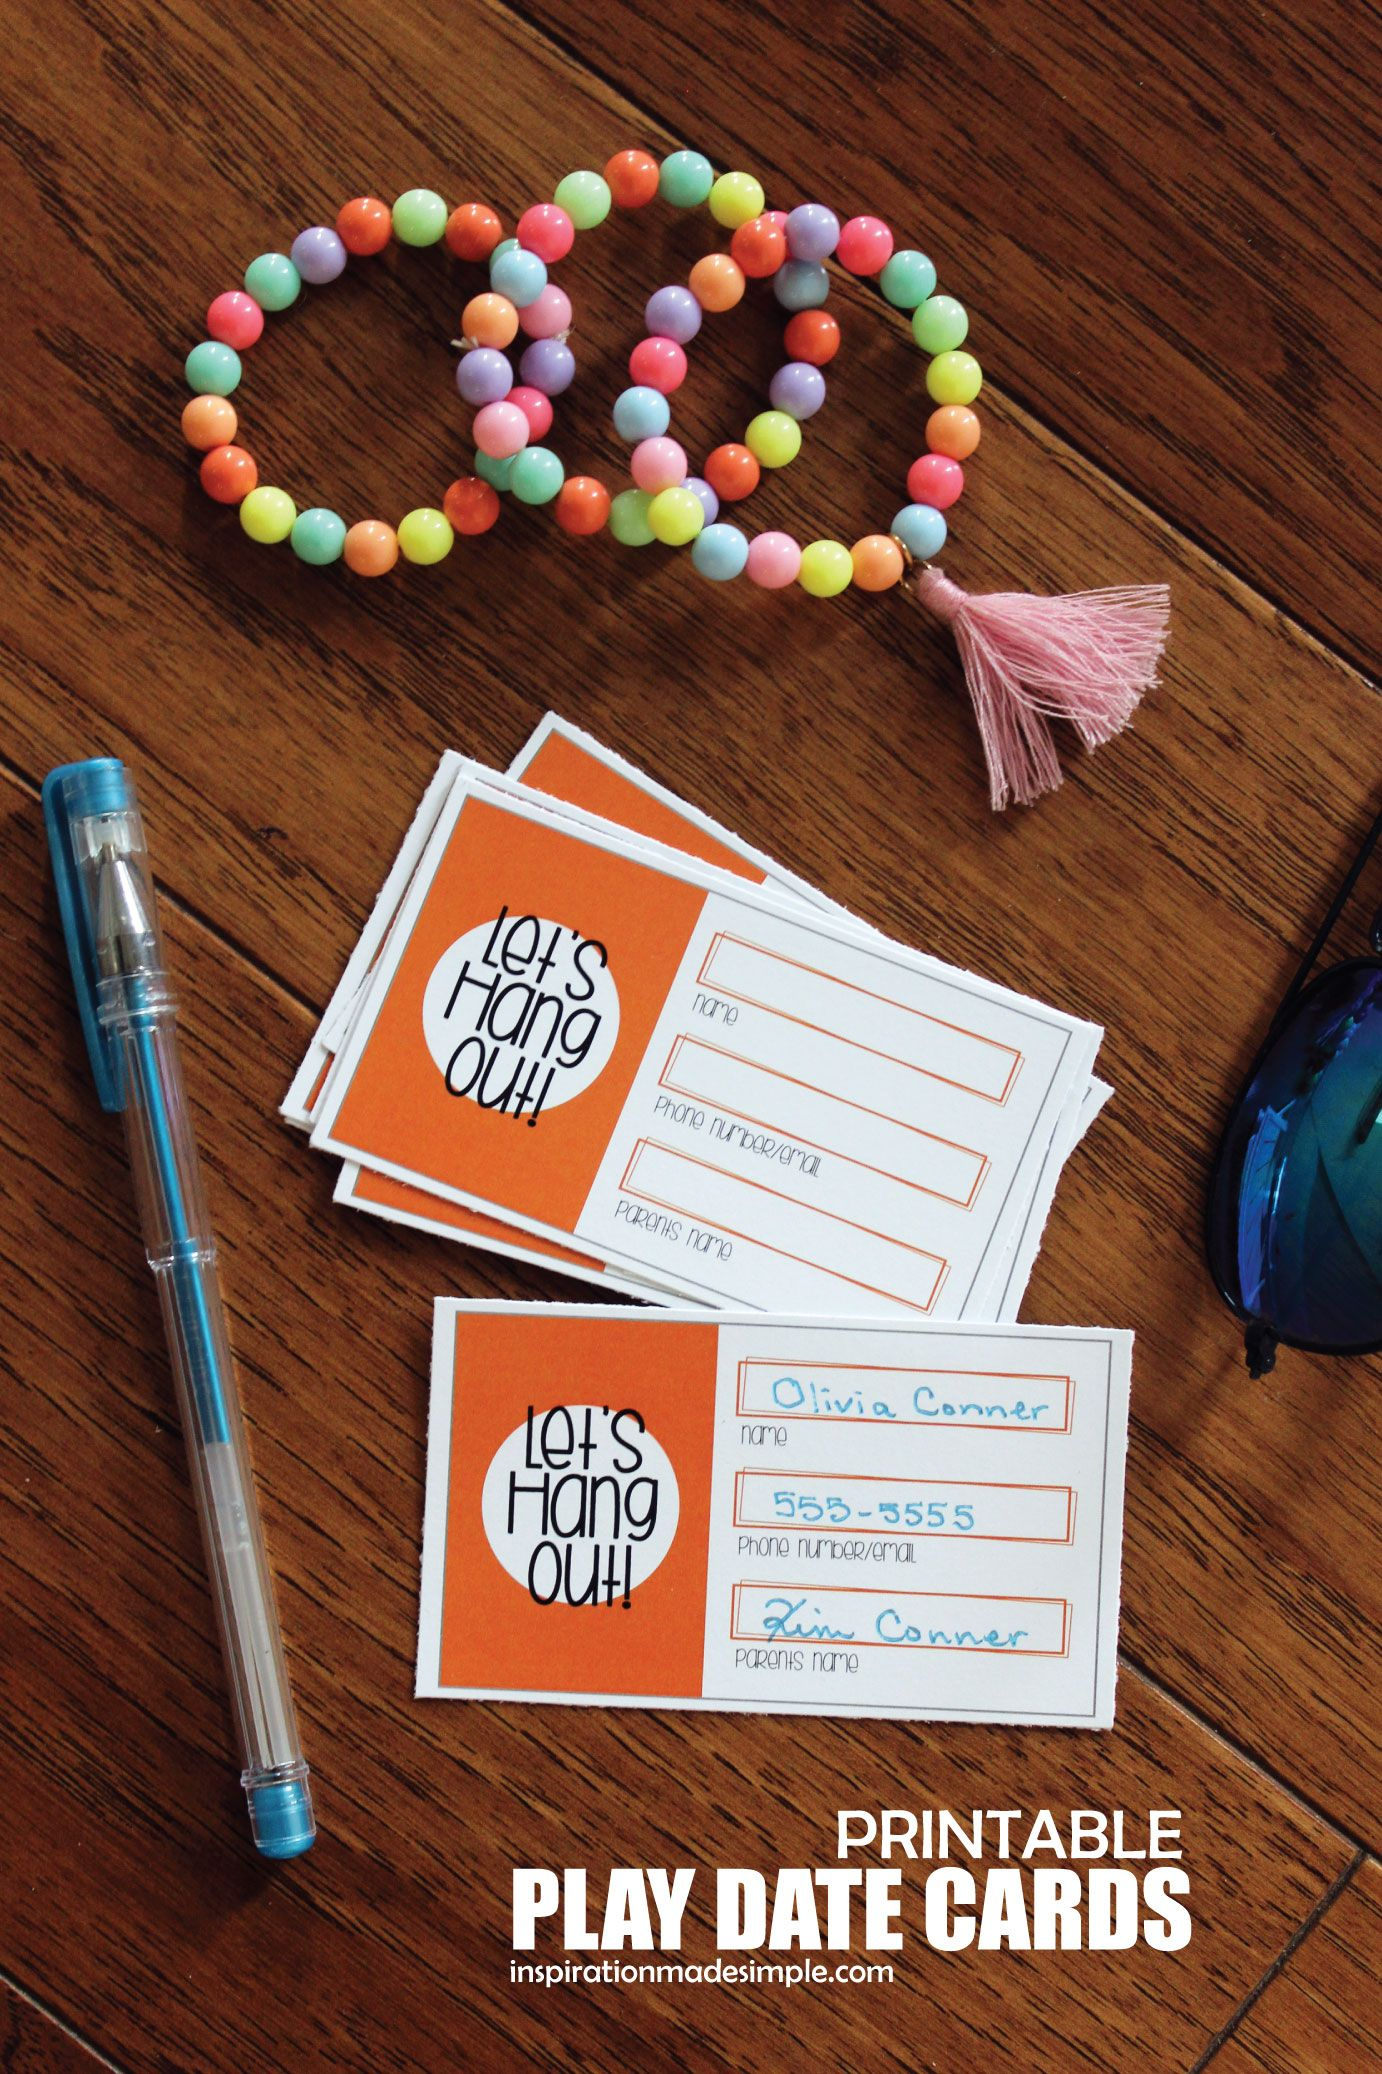 Printable Play Date Cards For Kids   Pinterest - Free Printable Play Date Cards